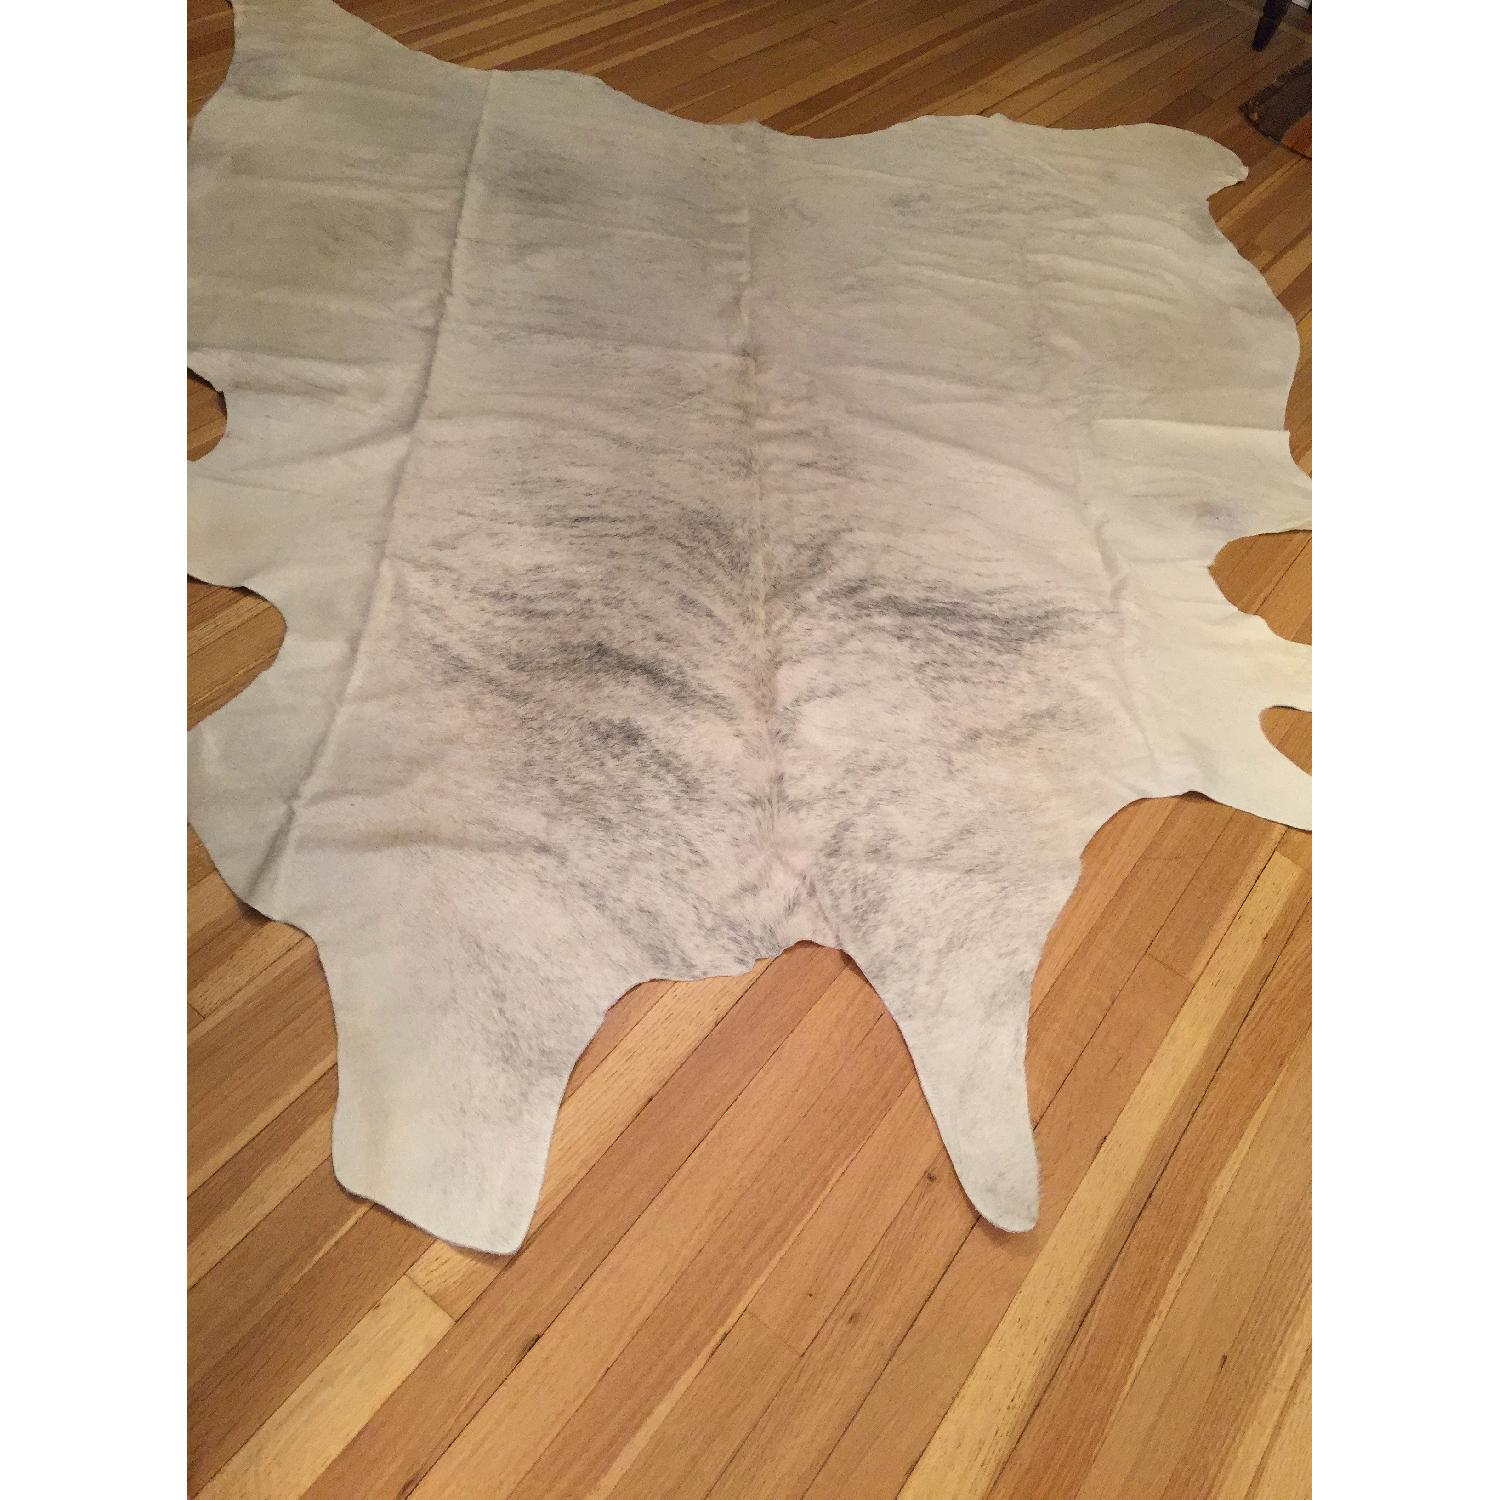 Animal Hide Rug from Argentina in White, Cream & Gray - image-6